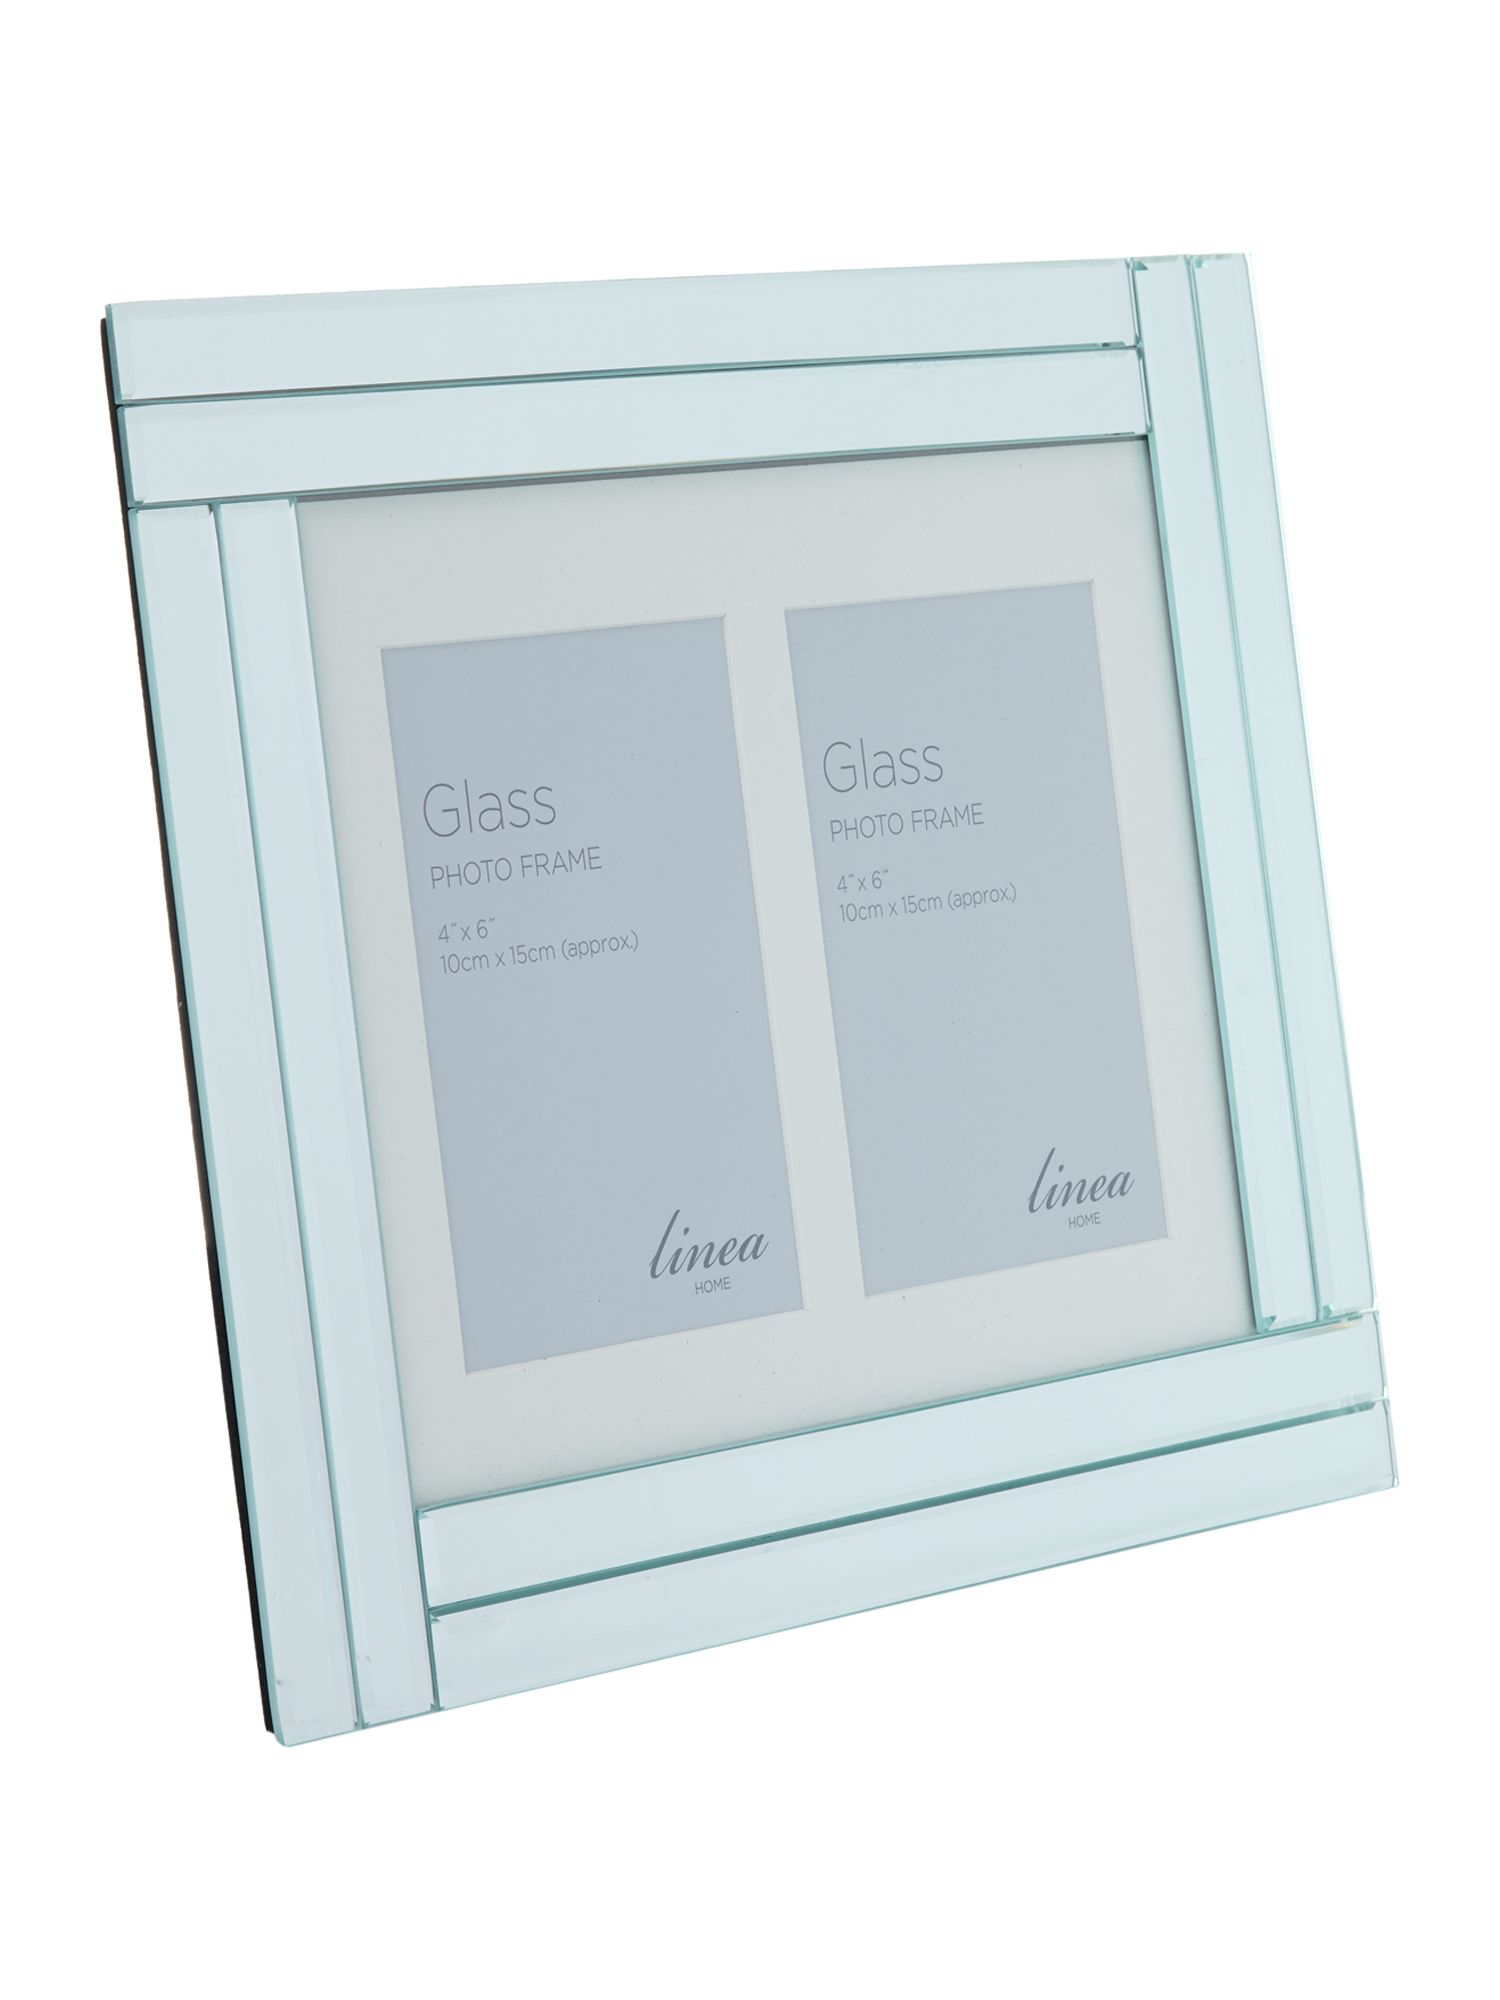 Double bevel mirror multi aperture photo frame